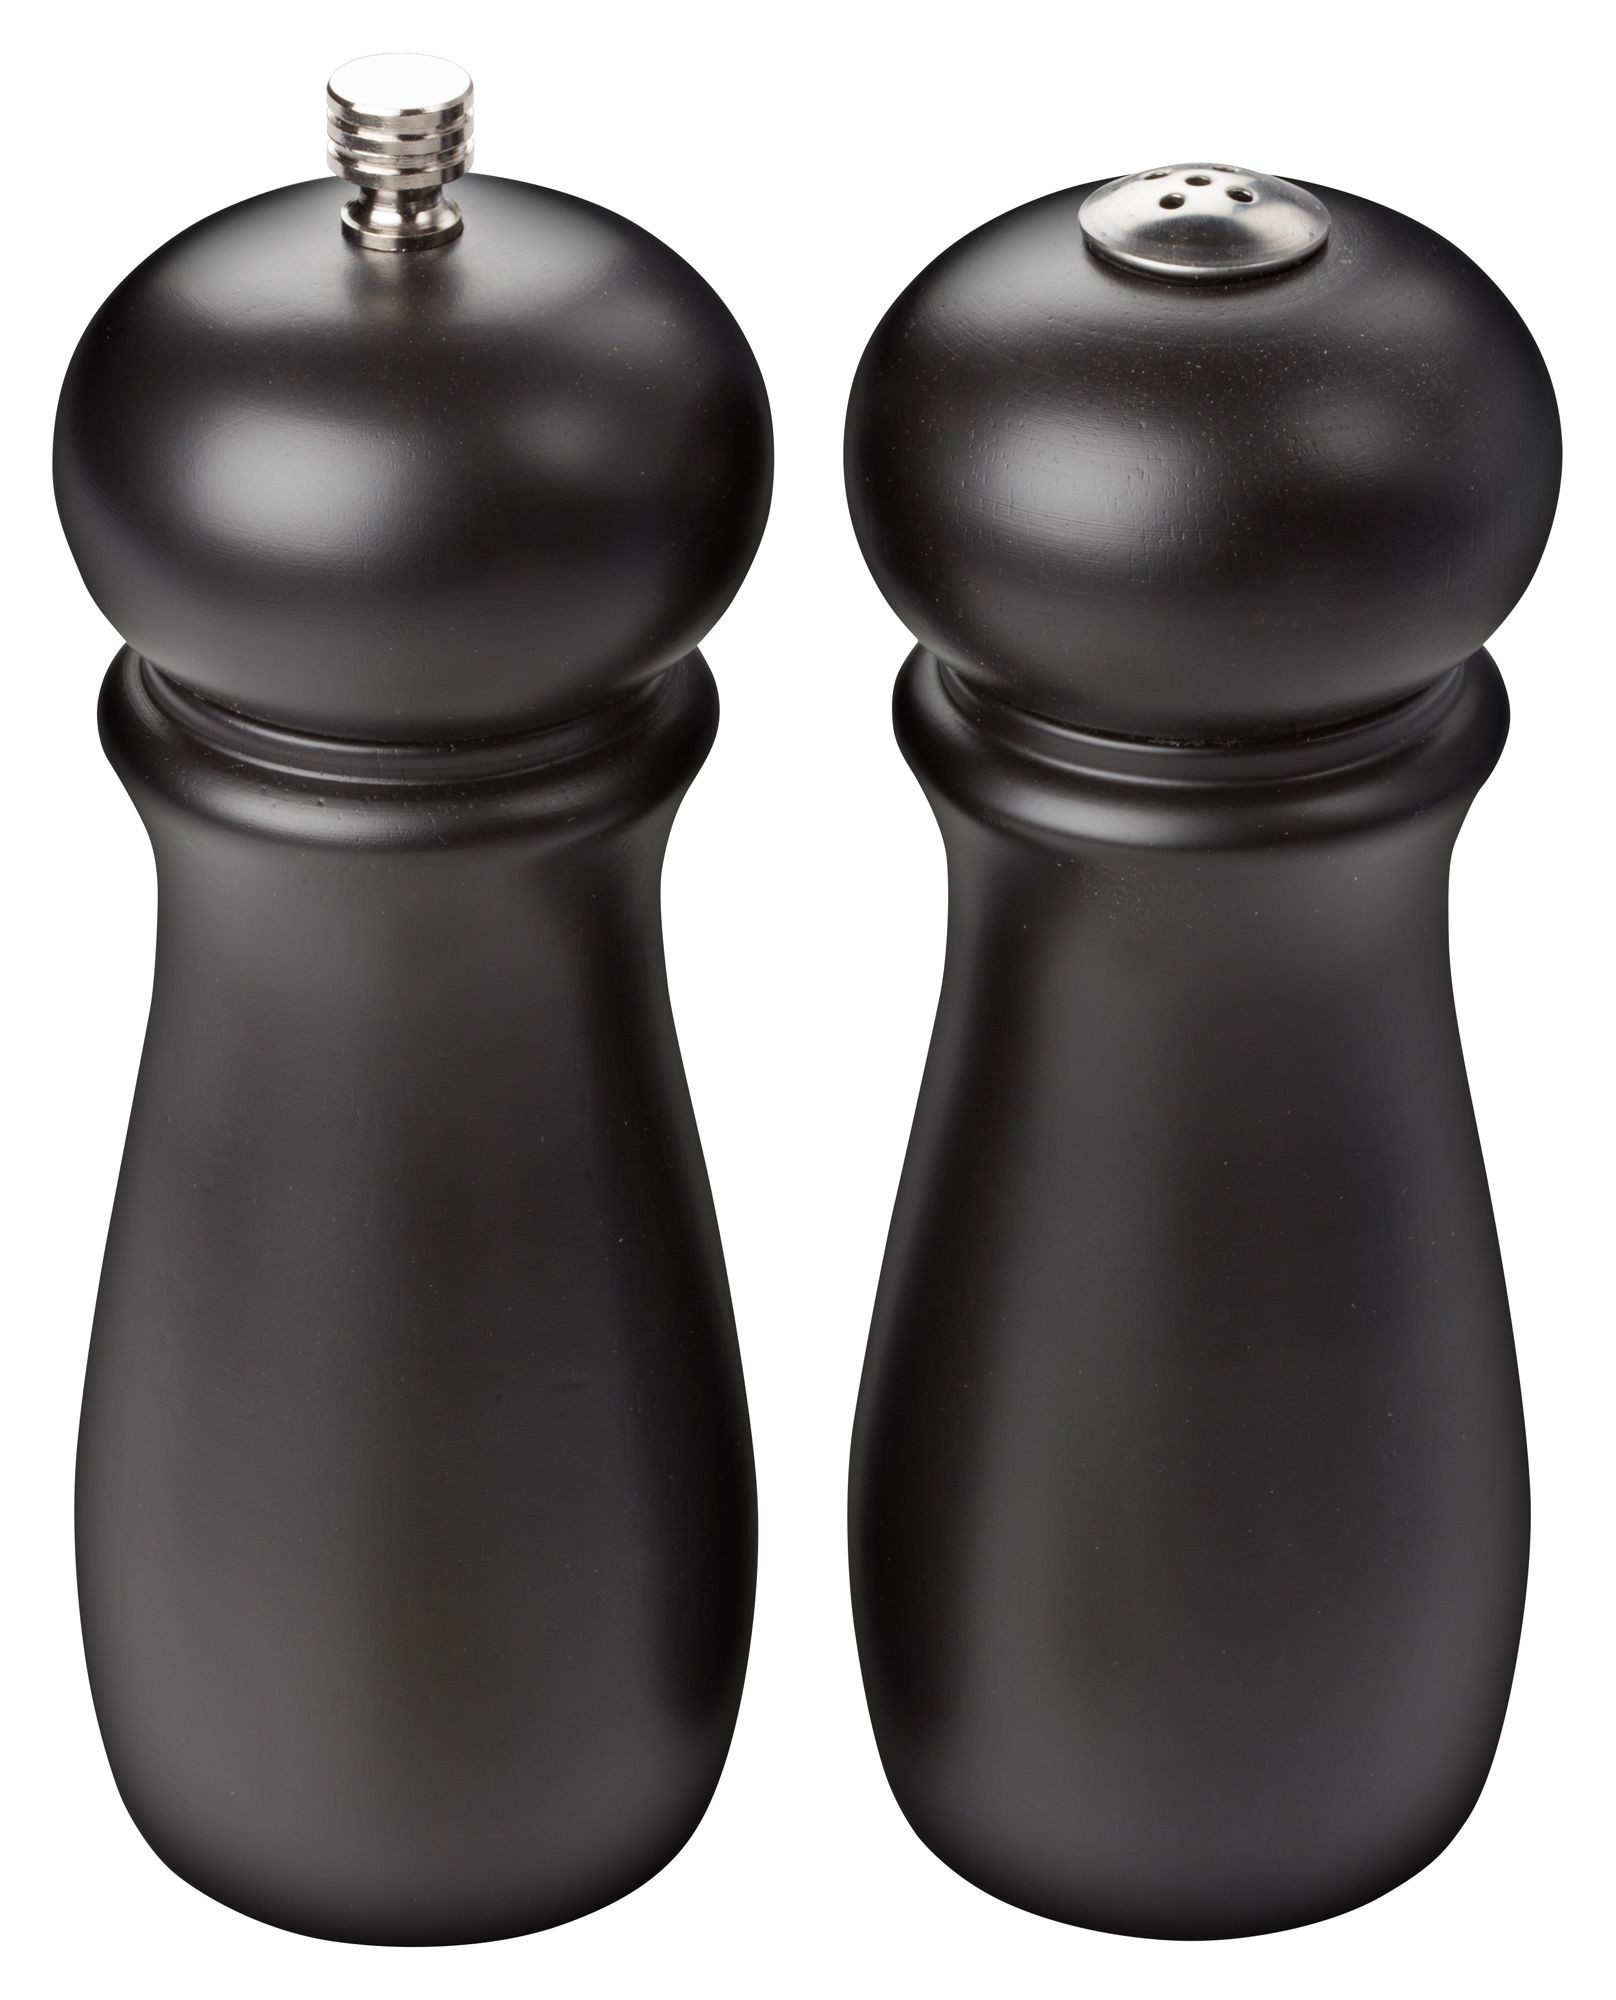 Winco SP-612 2-Piece Rubberwood Salt Shaker & Pepper Grinder